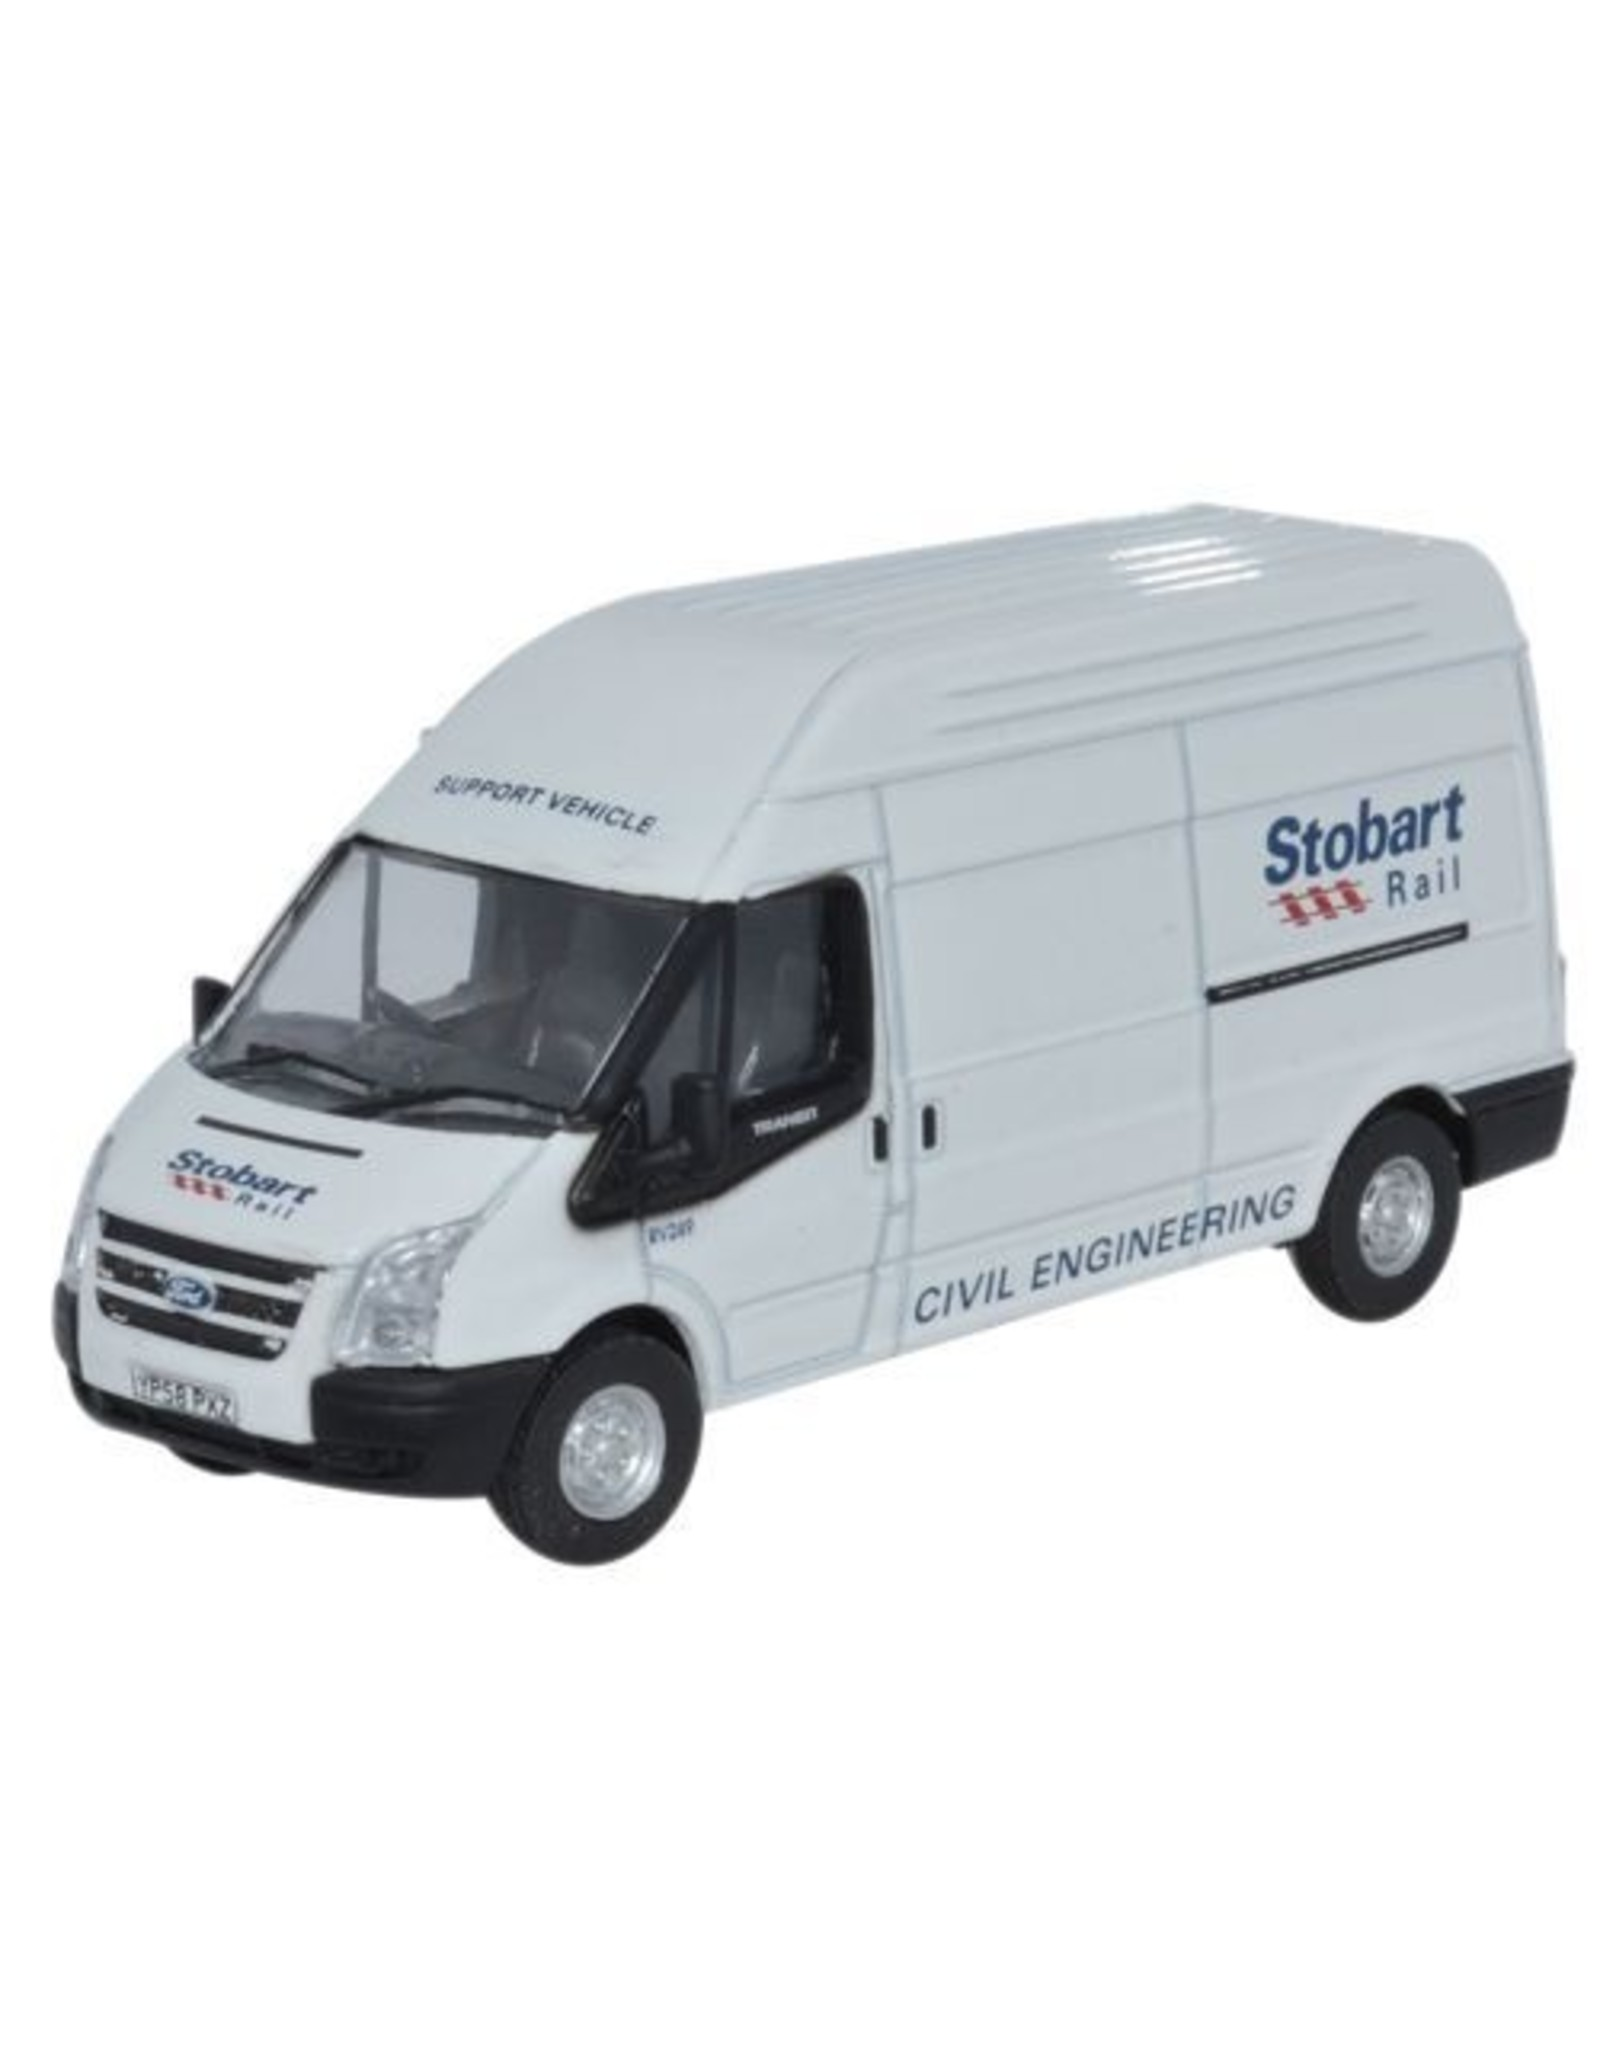 """Ford Europe FORD TRANSIT SWB LOW ROOFSTOBART RAIL"""""""""""